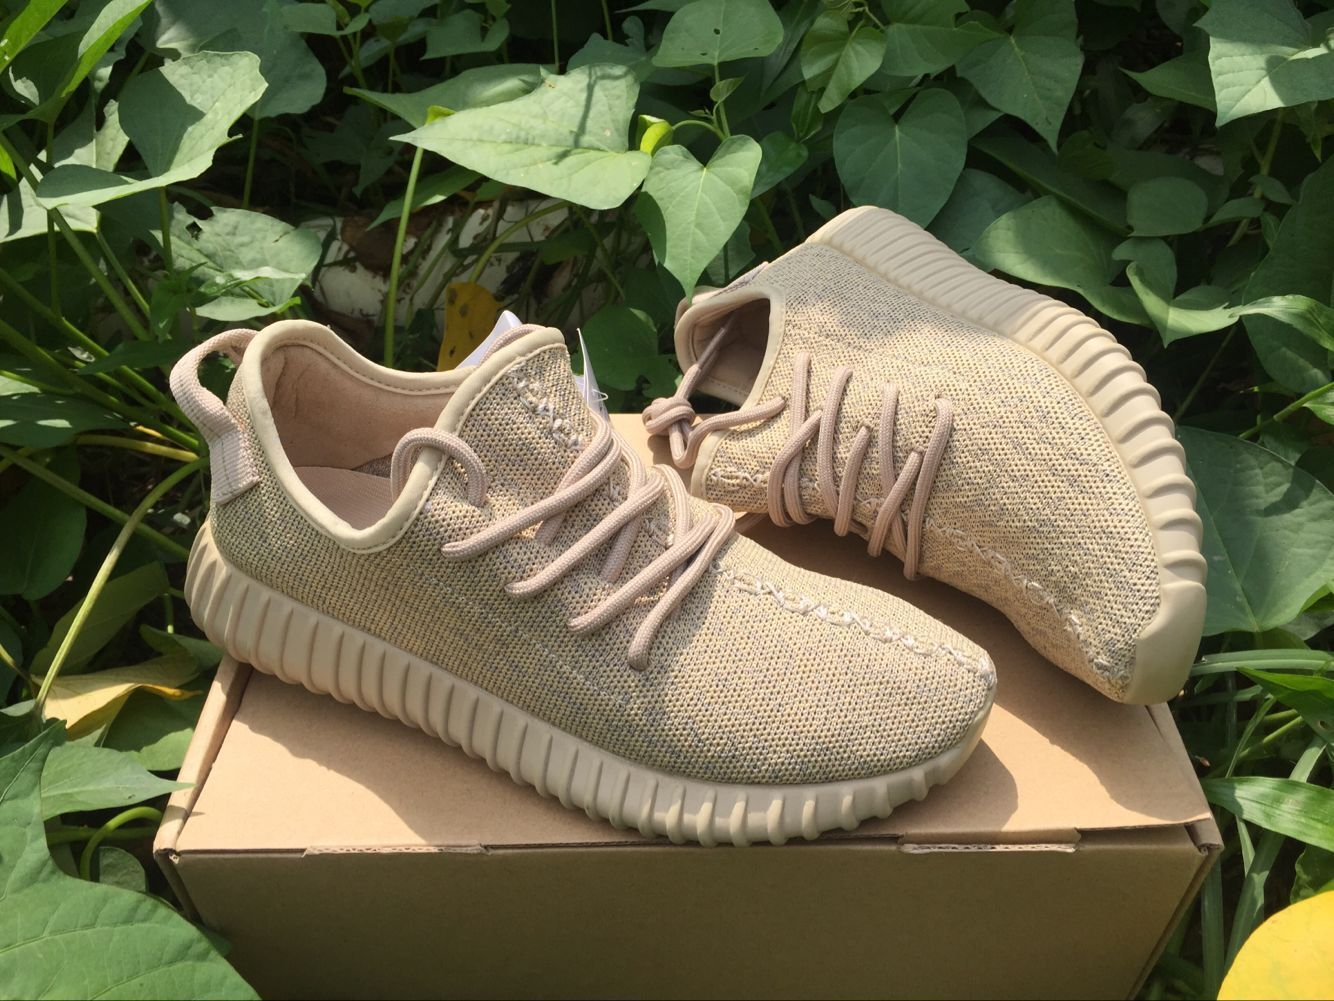 fdbbe1a9d2fa YEEZY BOOST 350